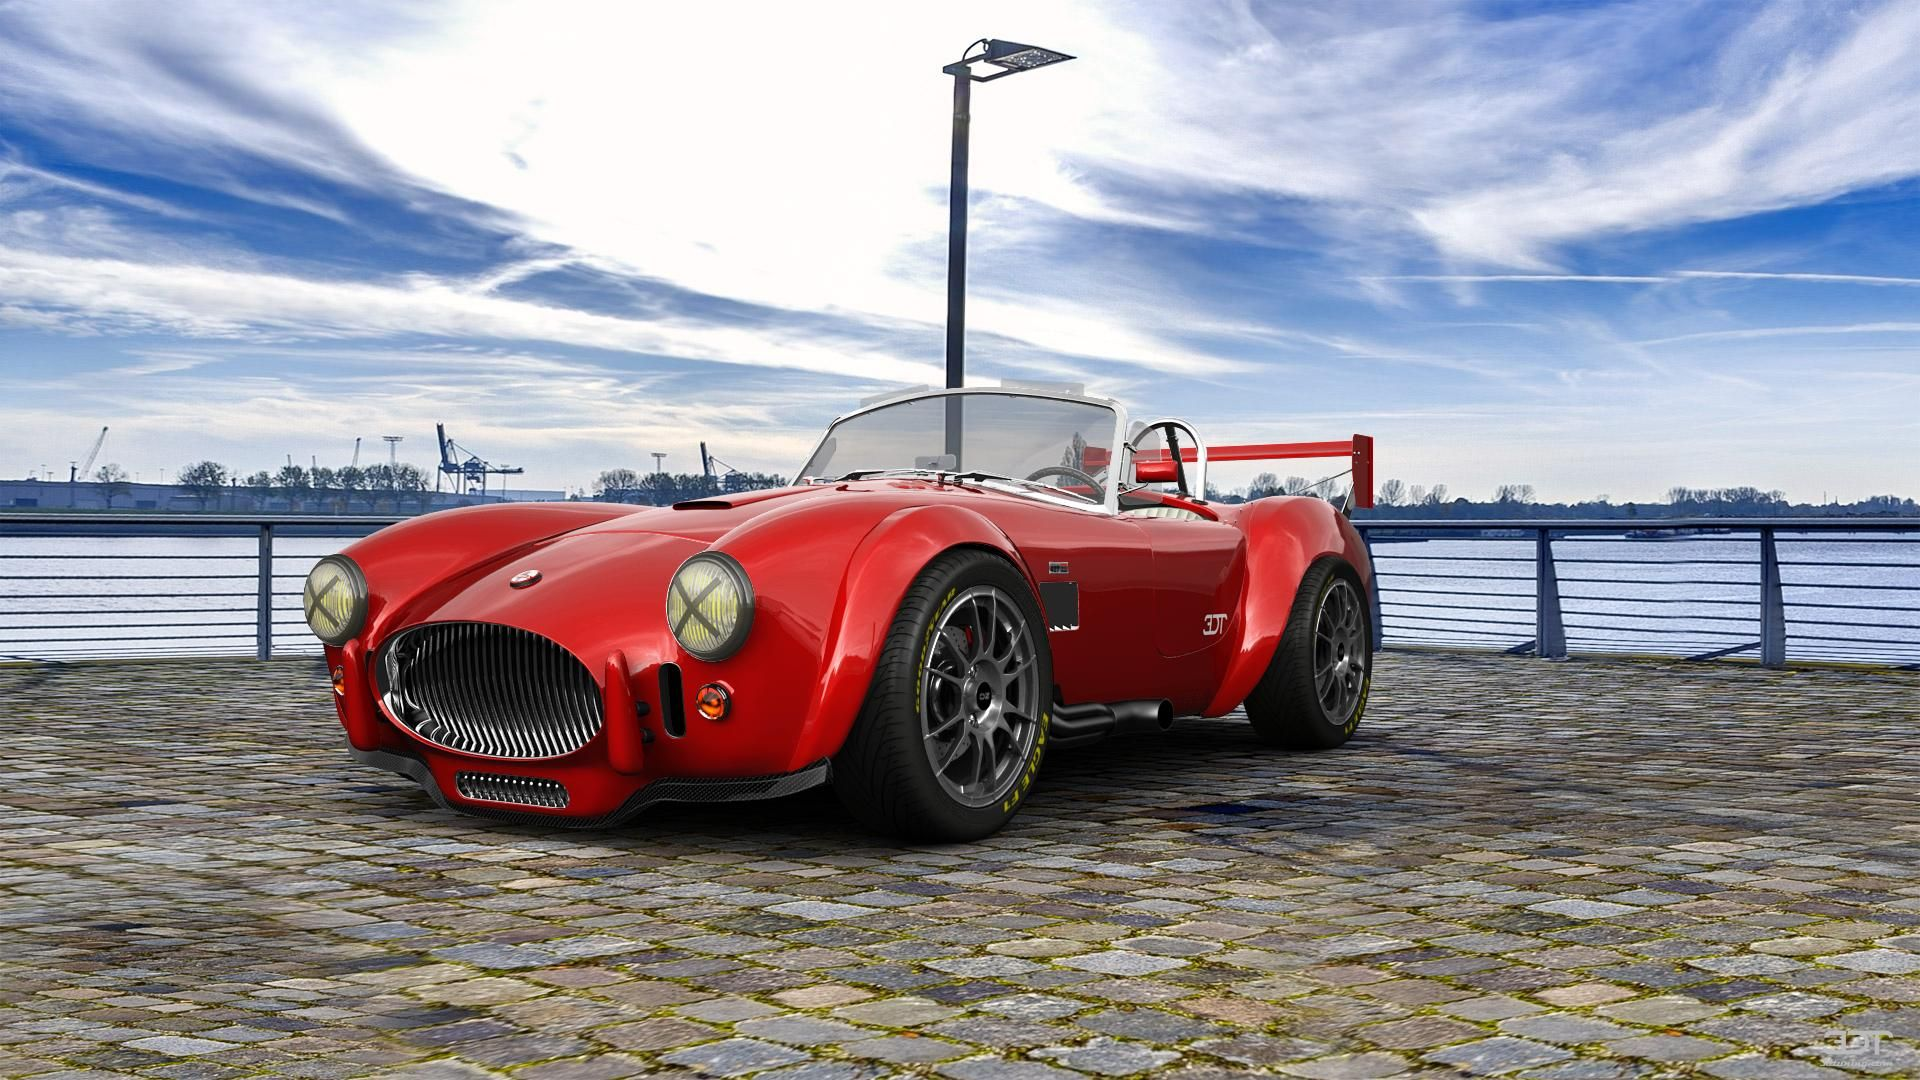 Checkout my tuning Ford ShelbyCobra 1961 at 3DTuning